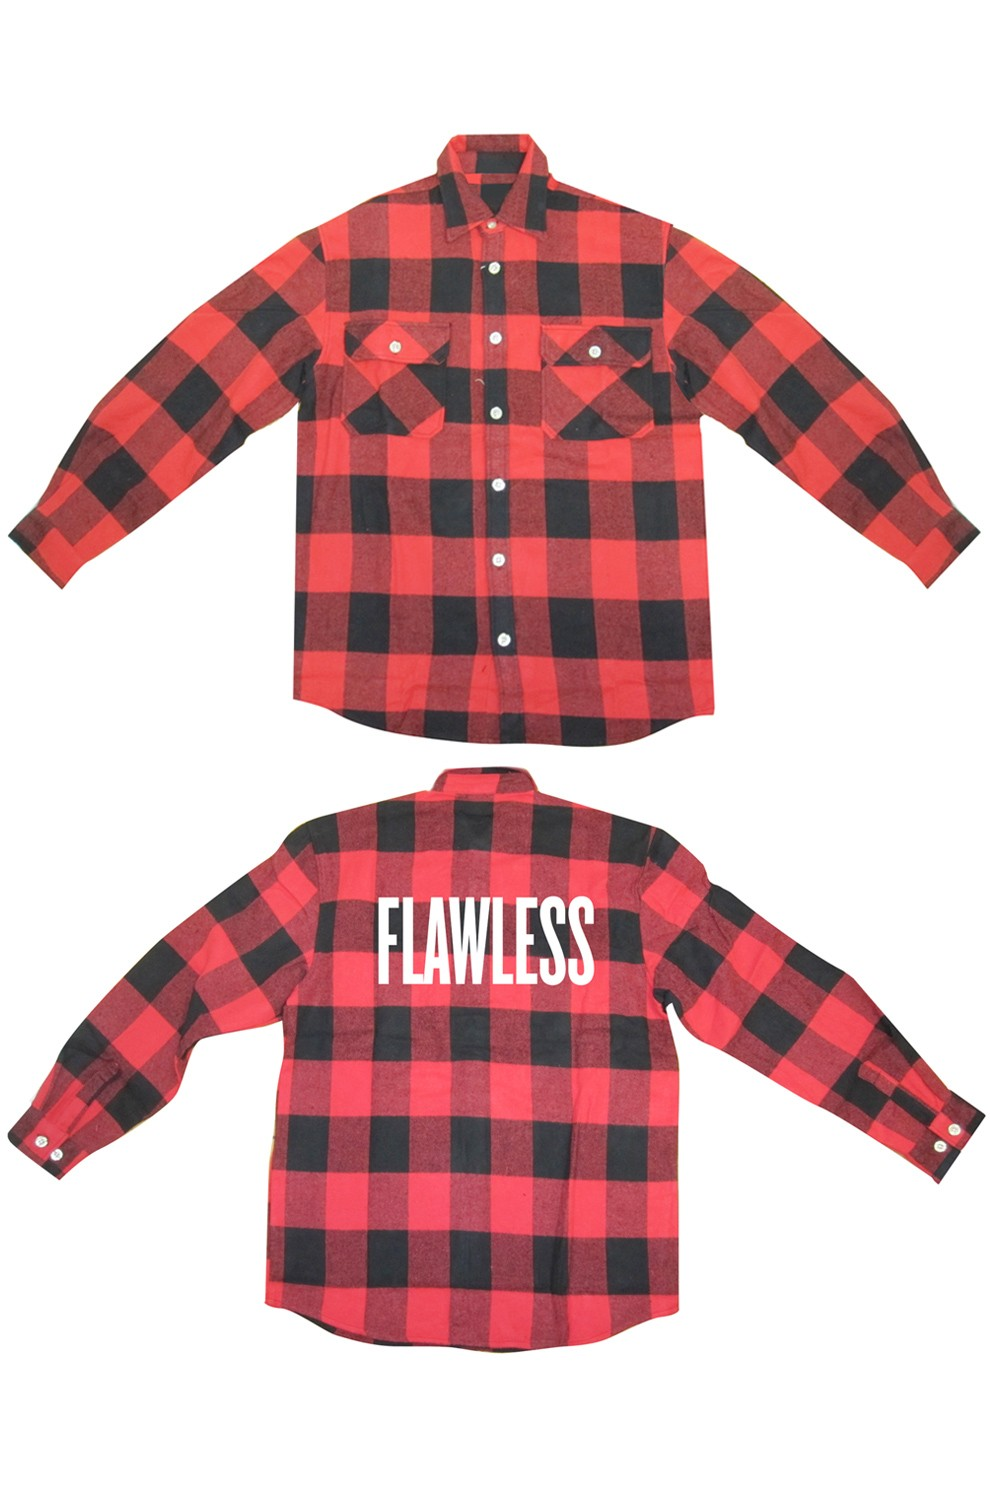 Flawless flannel shirt